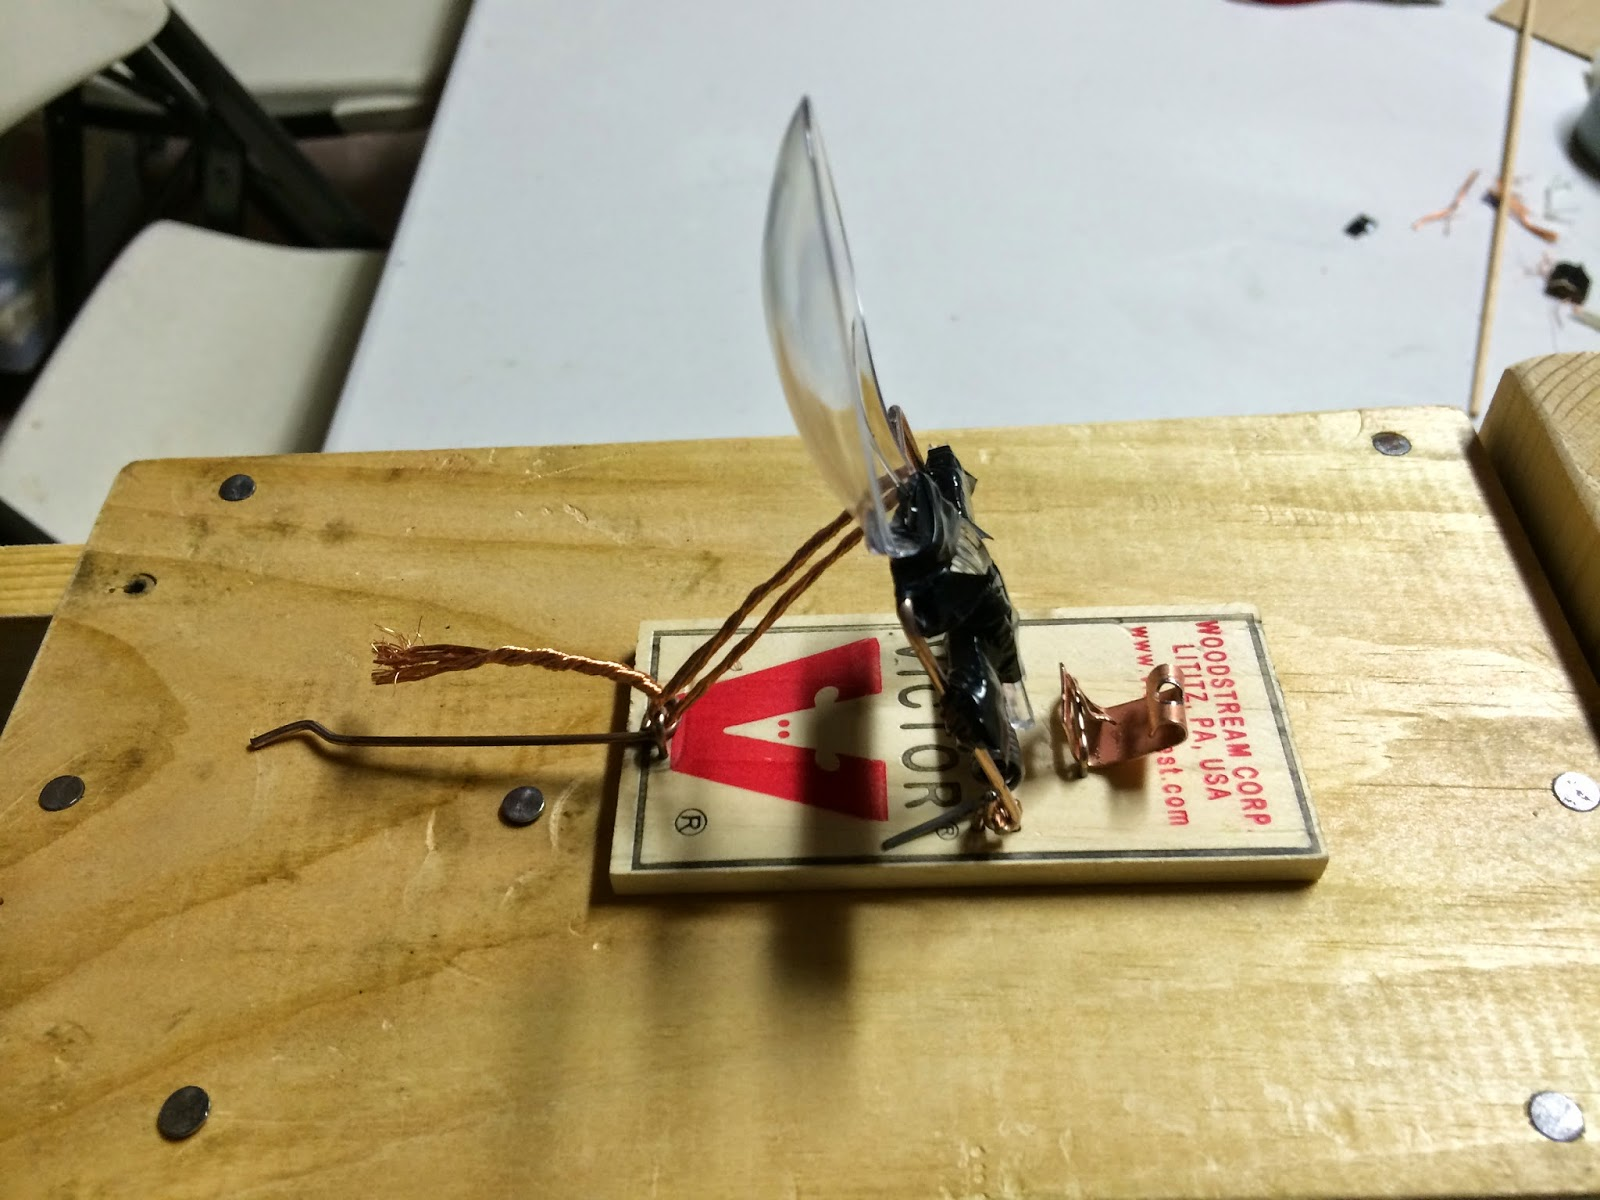 How to Make a Simple Mouse Trap Catapult Blogging About Physics